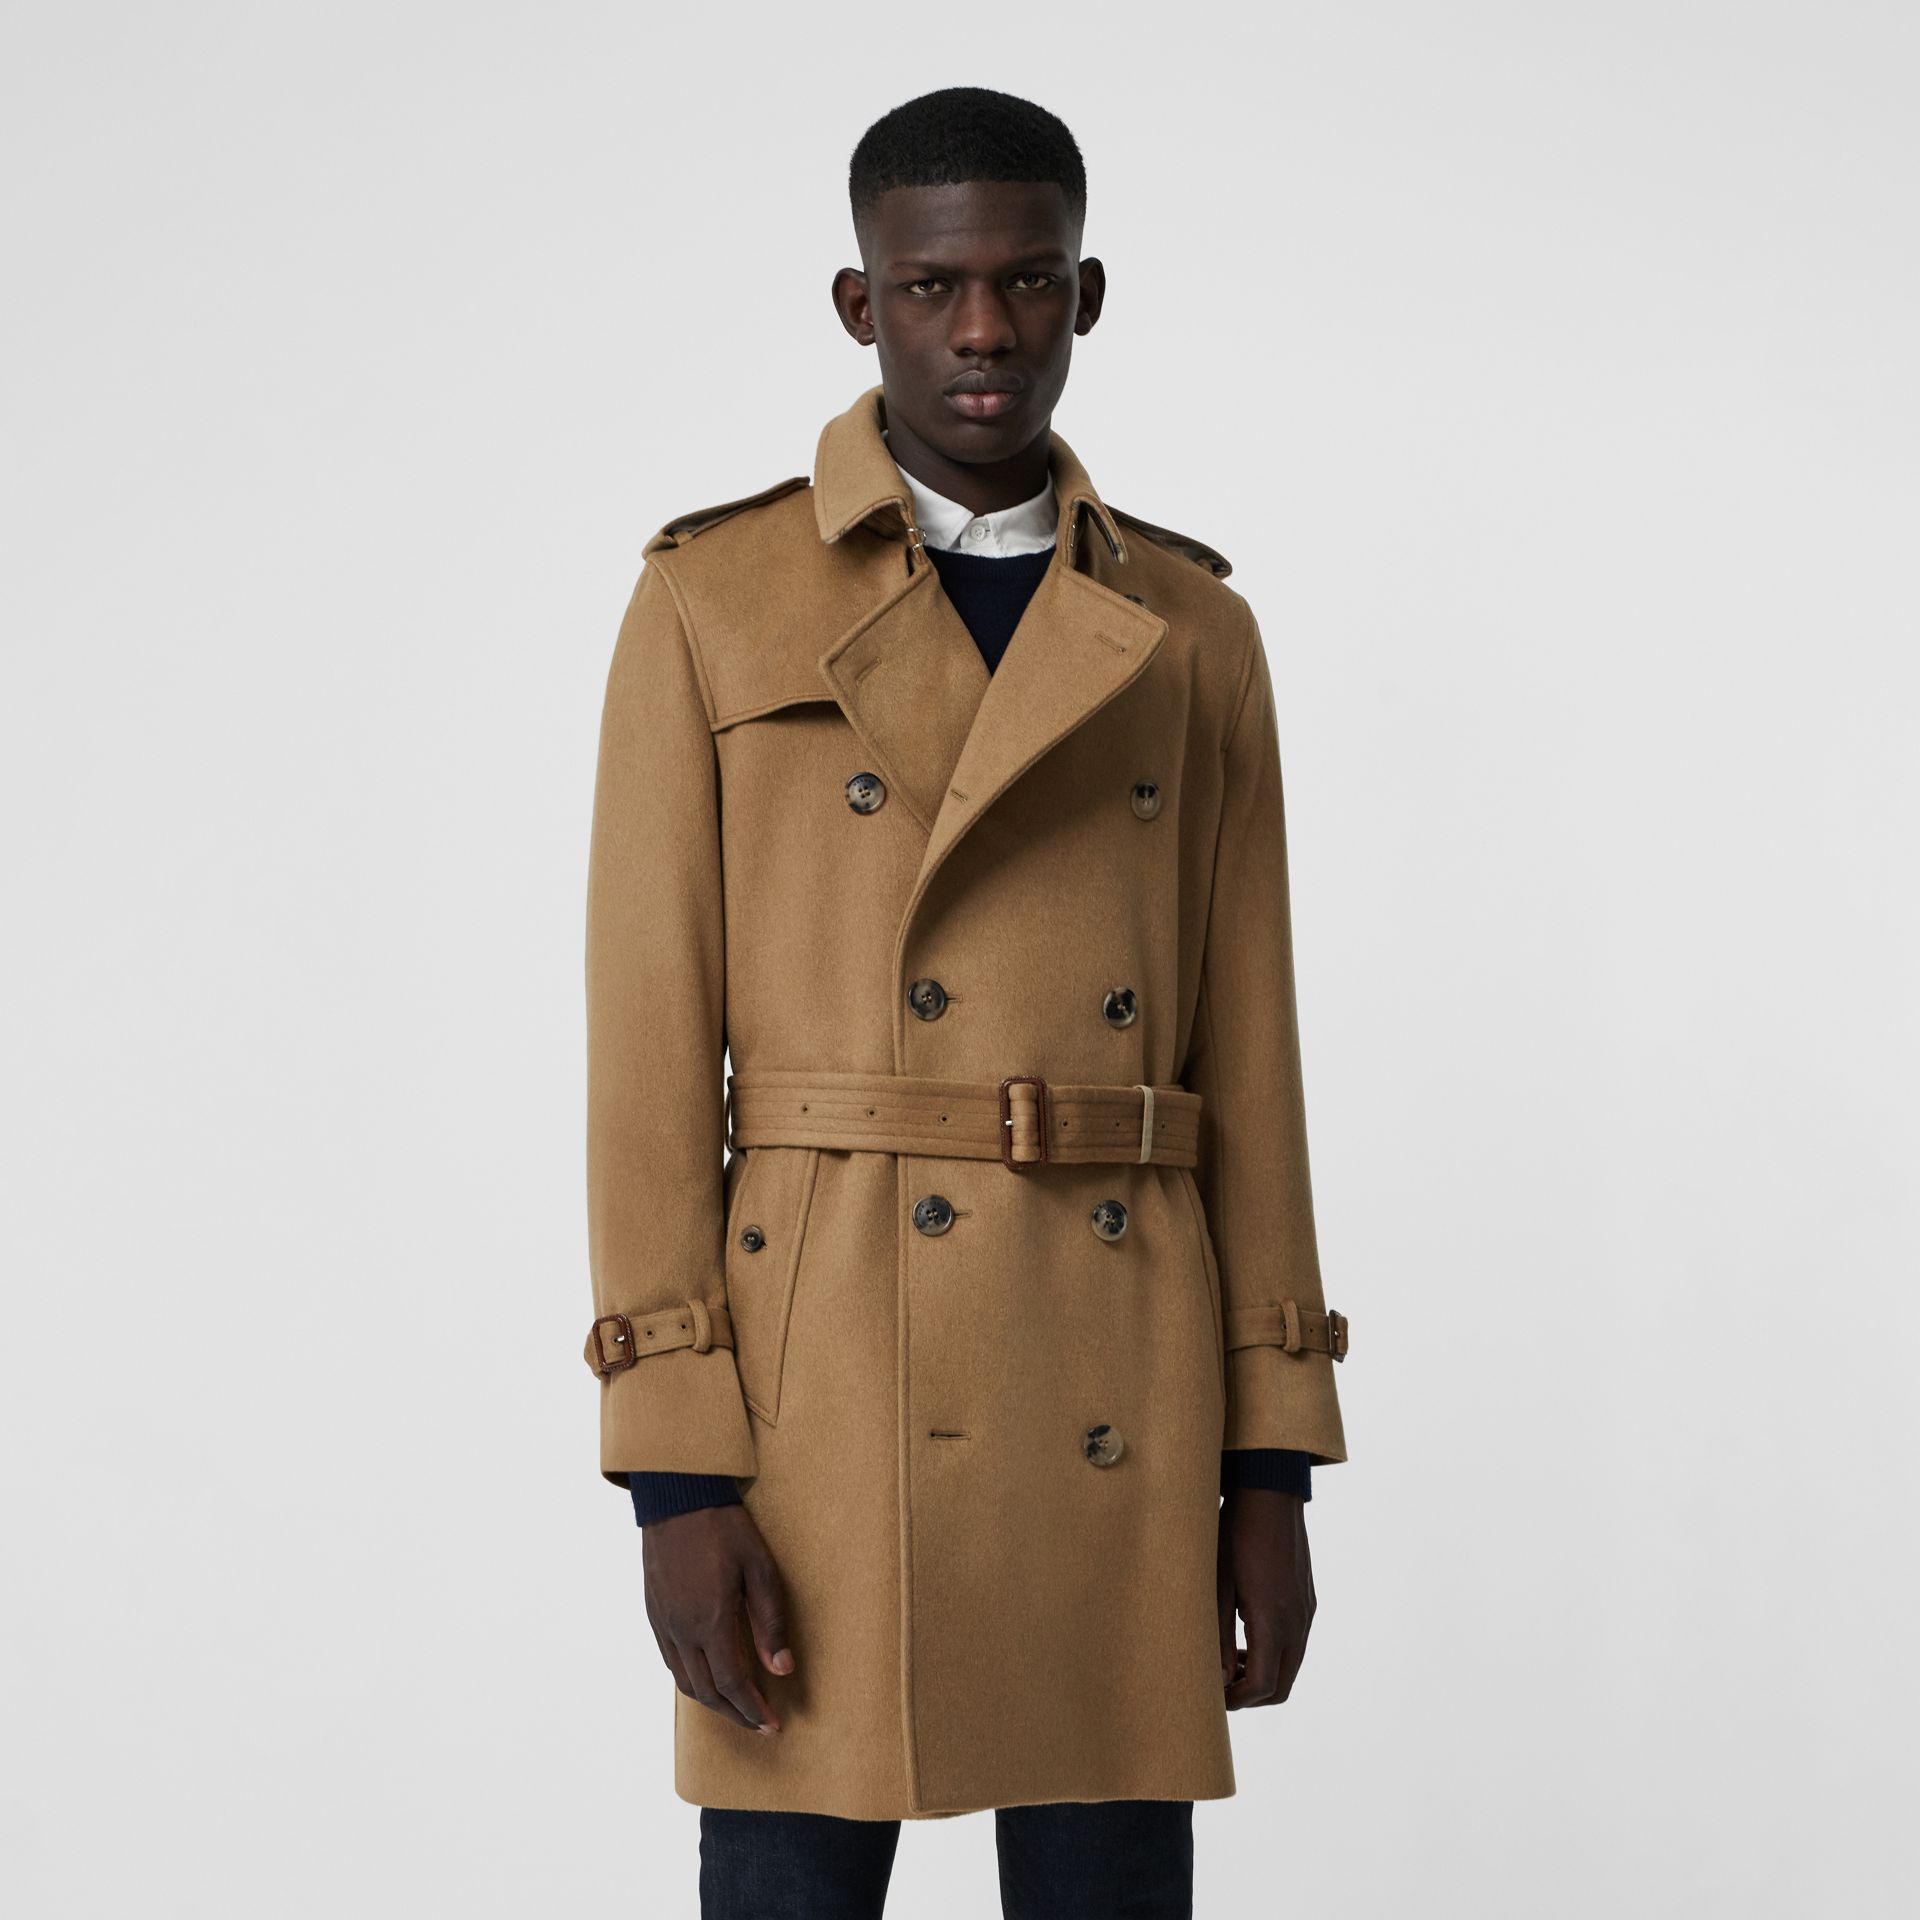 Cashmere Trench Coat in Camel - Men | Burberry Australia - gallery image 4